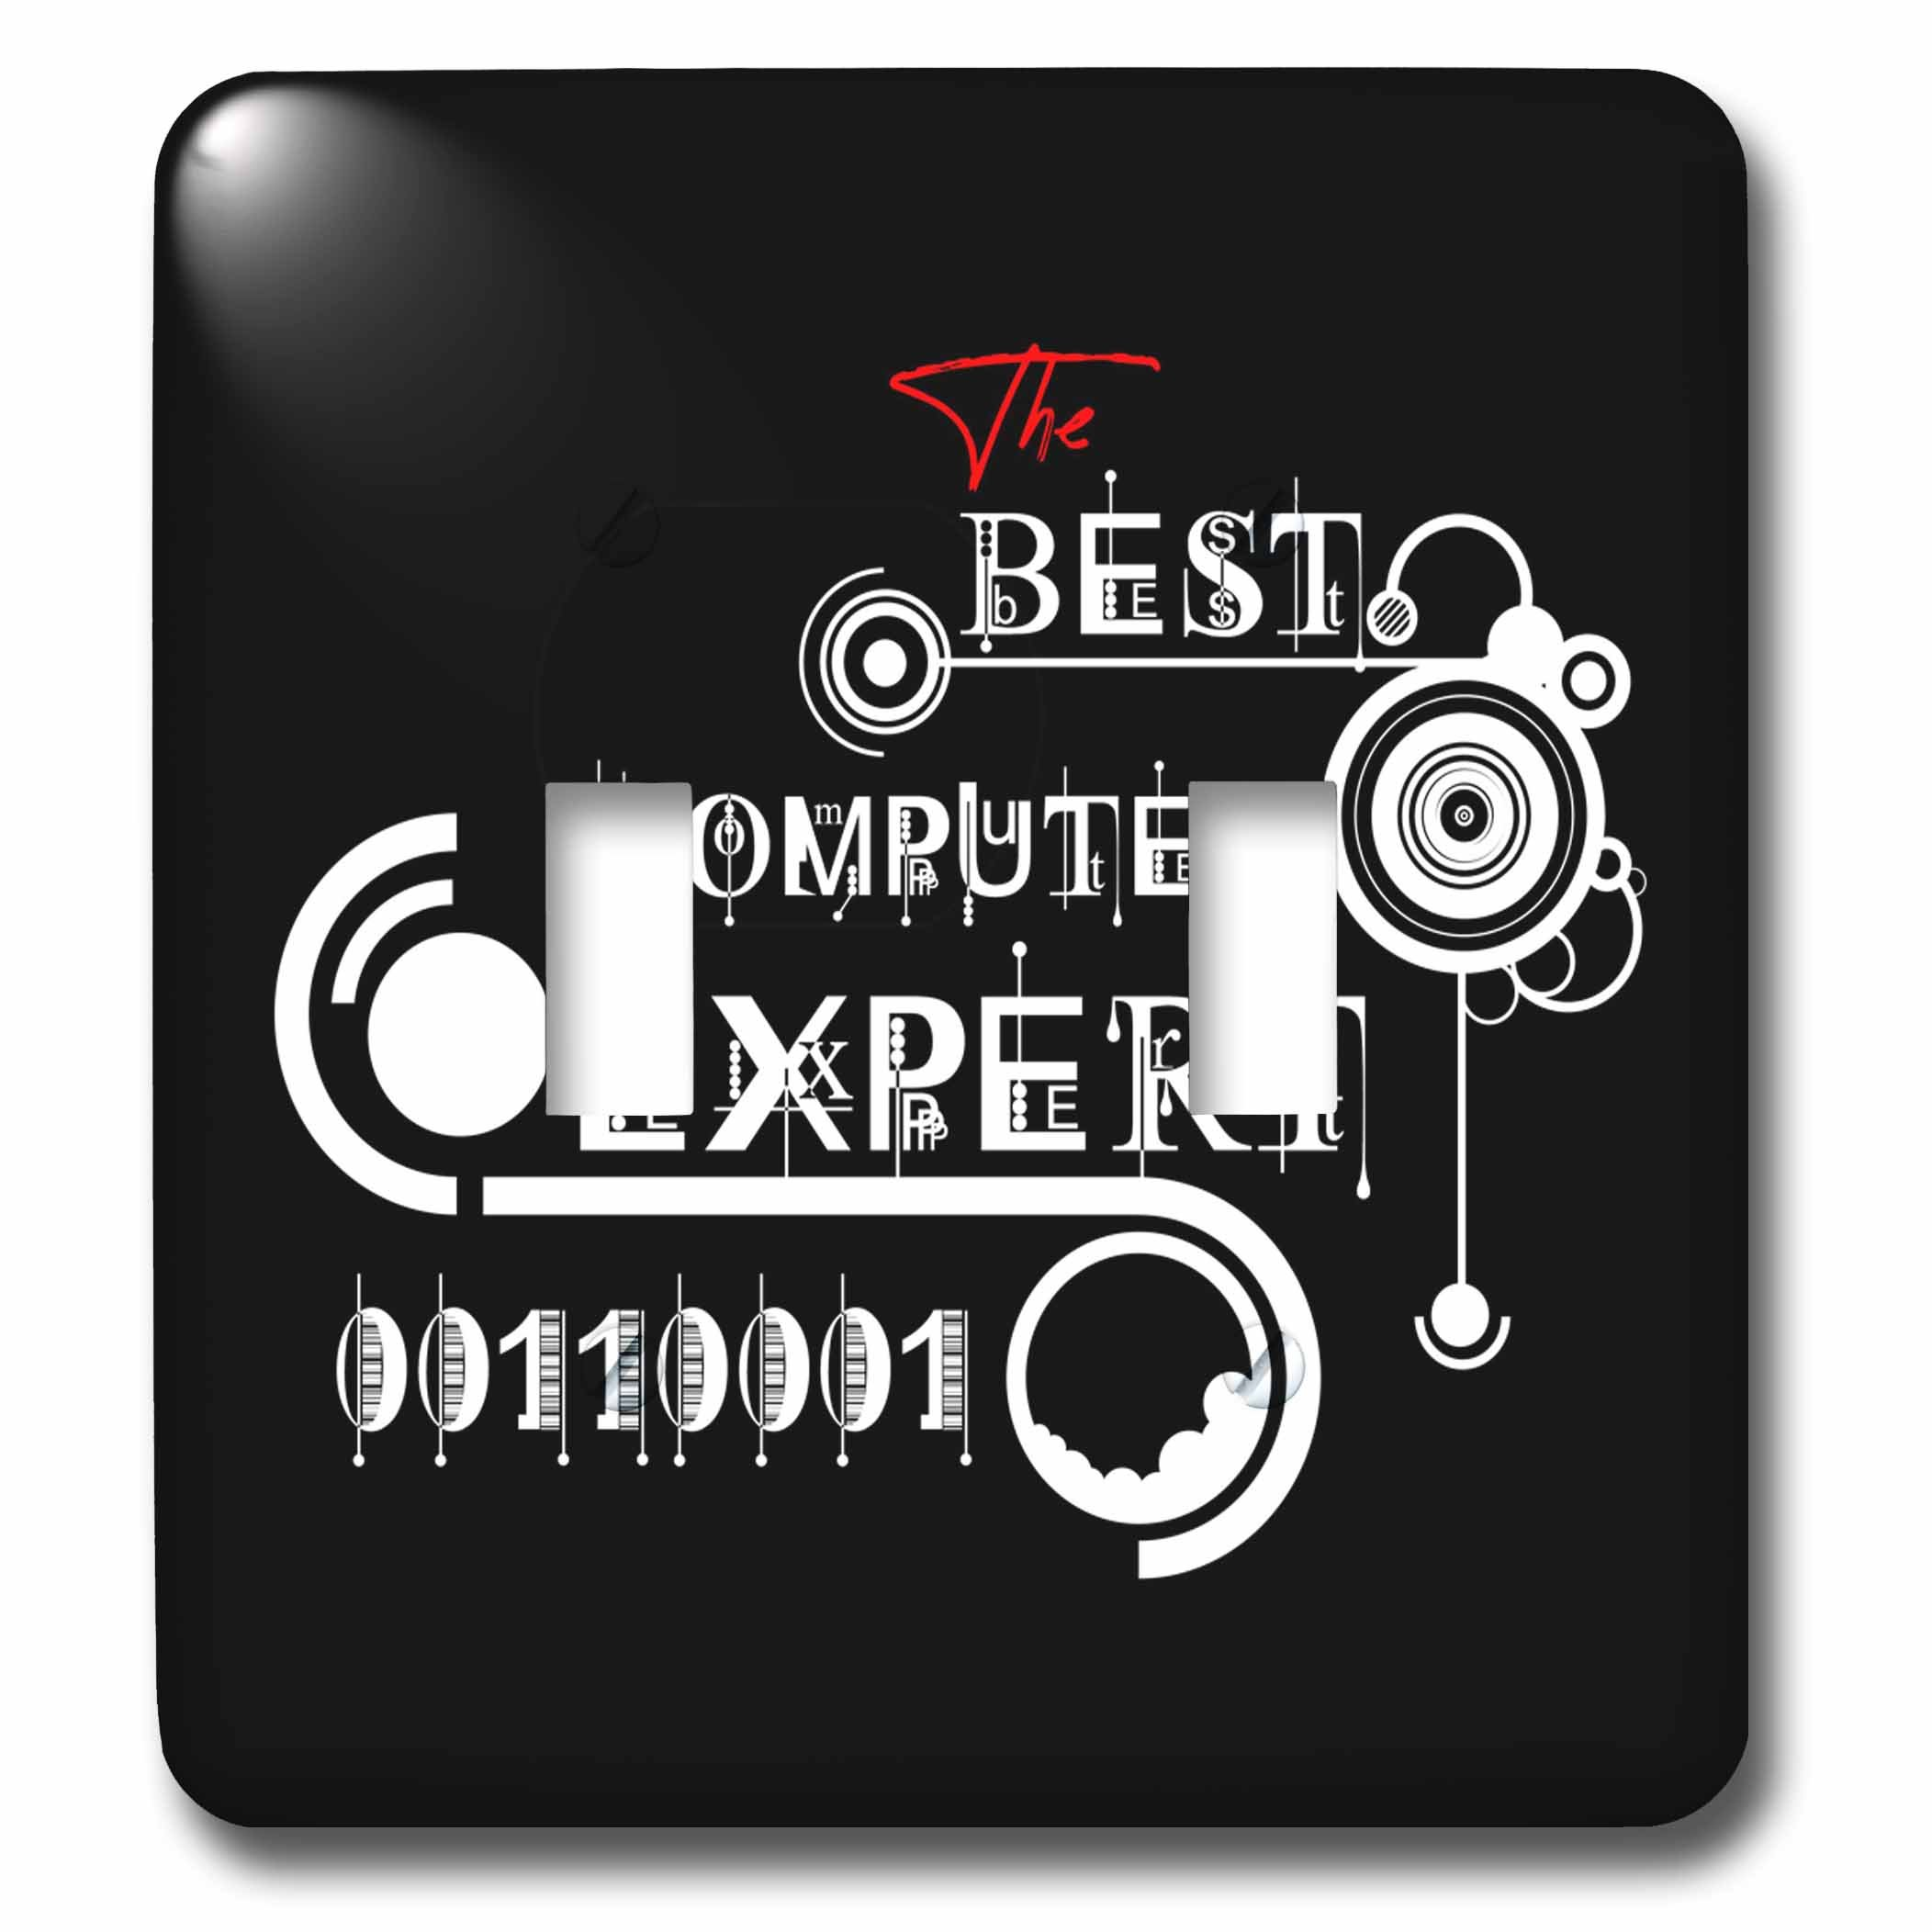 3dRose Alexis Design - Best Professional Ever - Decorative text The Best Computer Expert, modern shapes on black - Light Switch Covers - double toggle switch (lsp_286486_2)